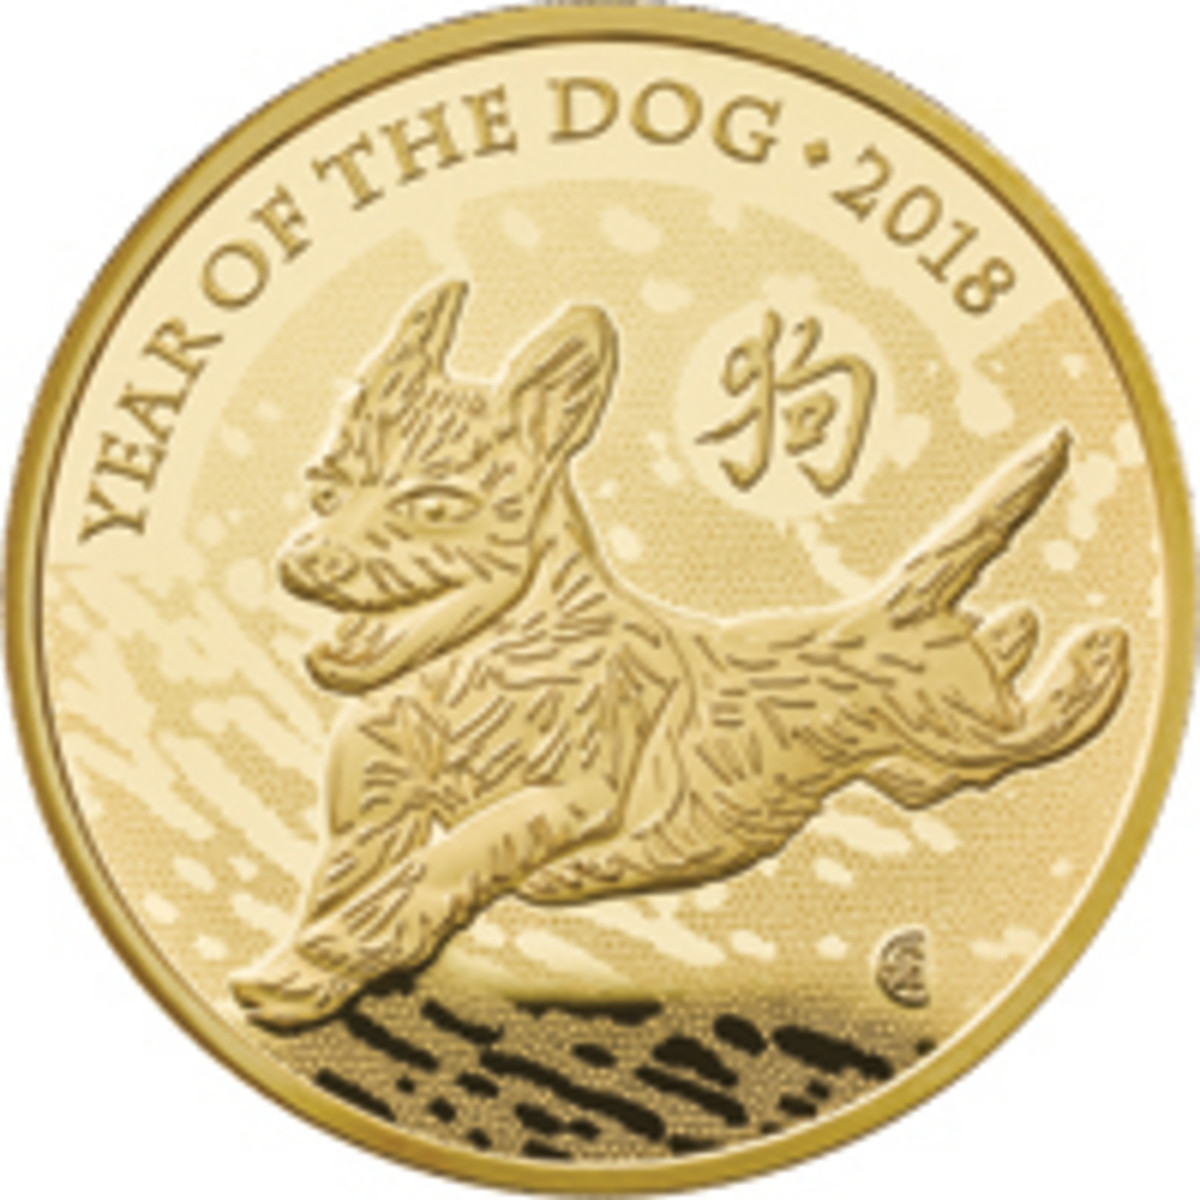 Common reverse of Great Britain's fifth silver and gold Shengxiào Collection lunar coins. Designer Wuon-Gean Ho's exuberant terrier is backed by the biometric nose print of a greyhound. Illustrated is the proof gold £100. (Image courtesy & © 2017 The Royal Mint)